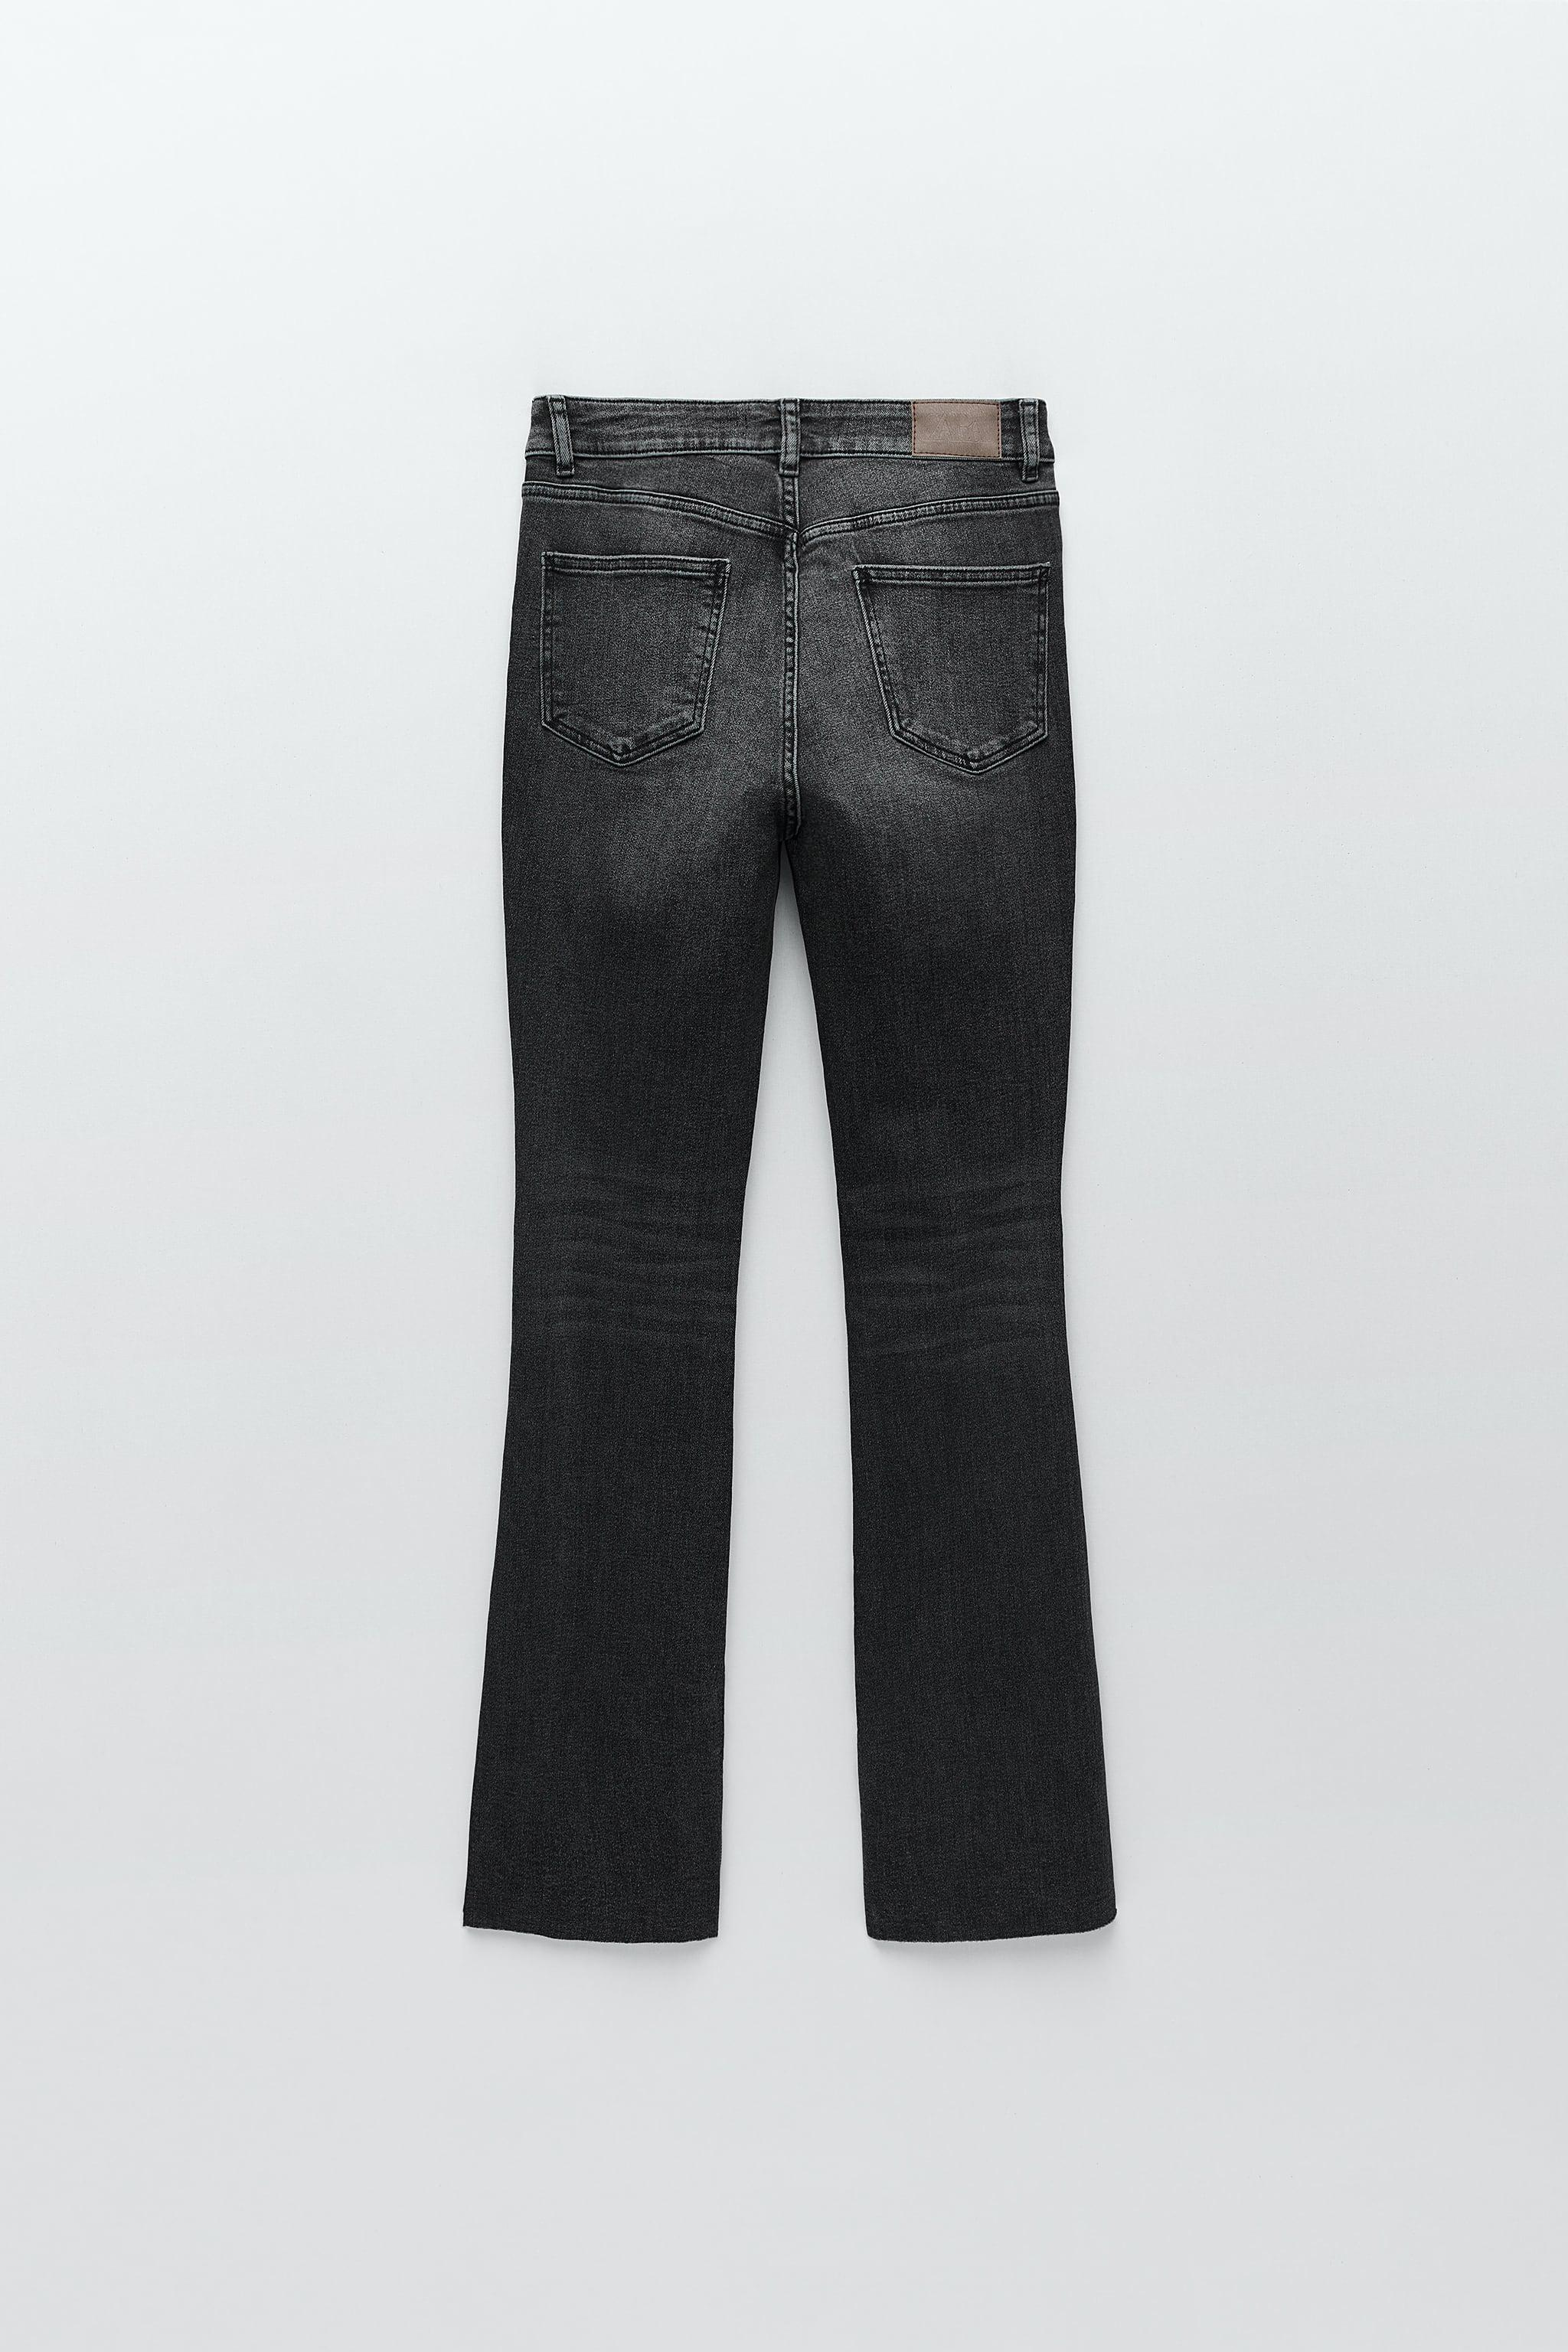 FLARED HIGH RISE Z1975 SKINNY JEANS 3